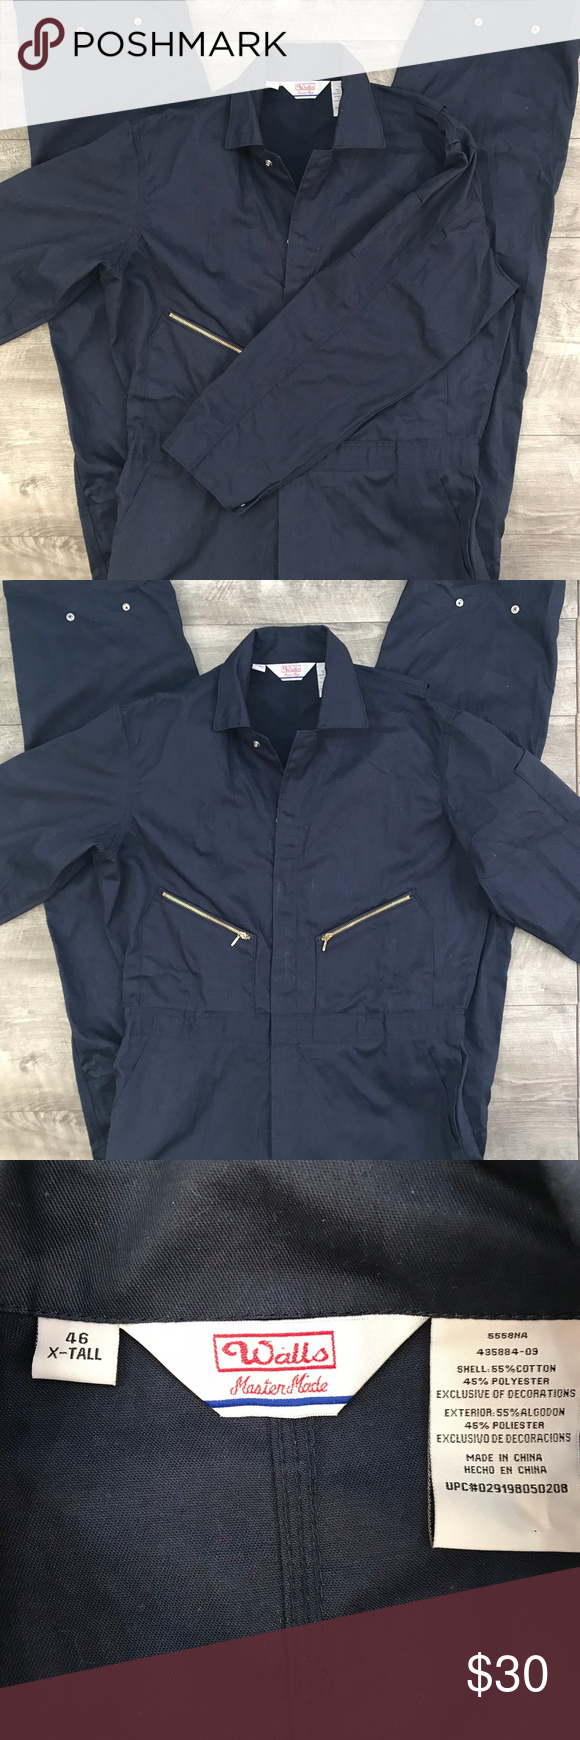 walls master made navy blue long sleeve coveralls walls on walls coveralls id=19350